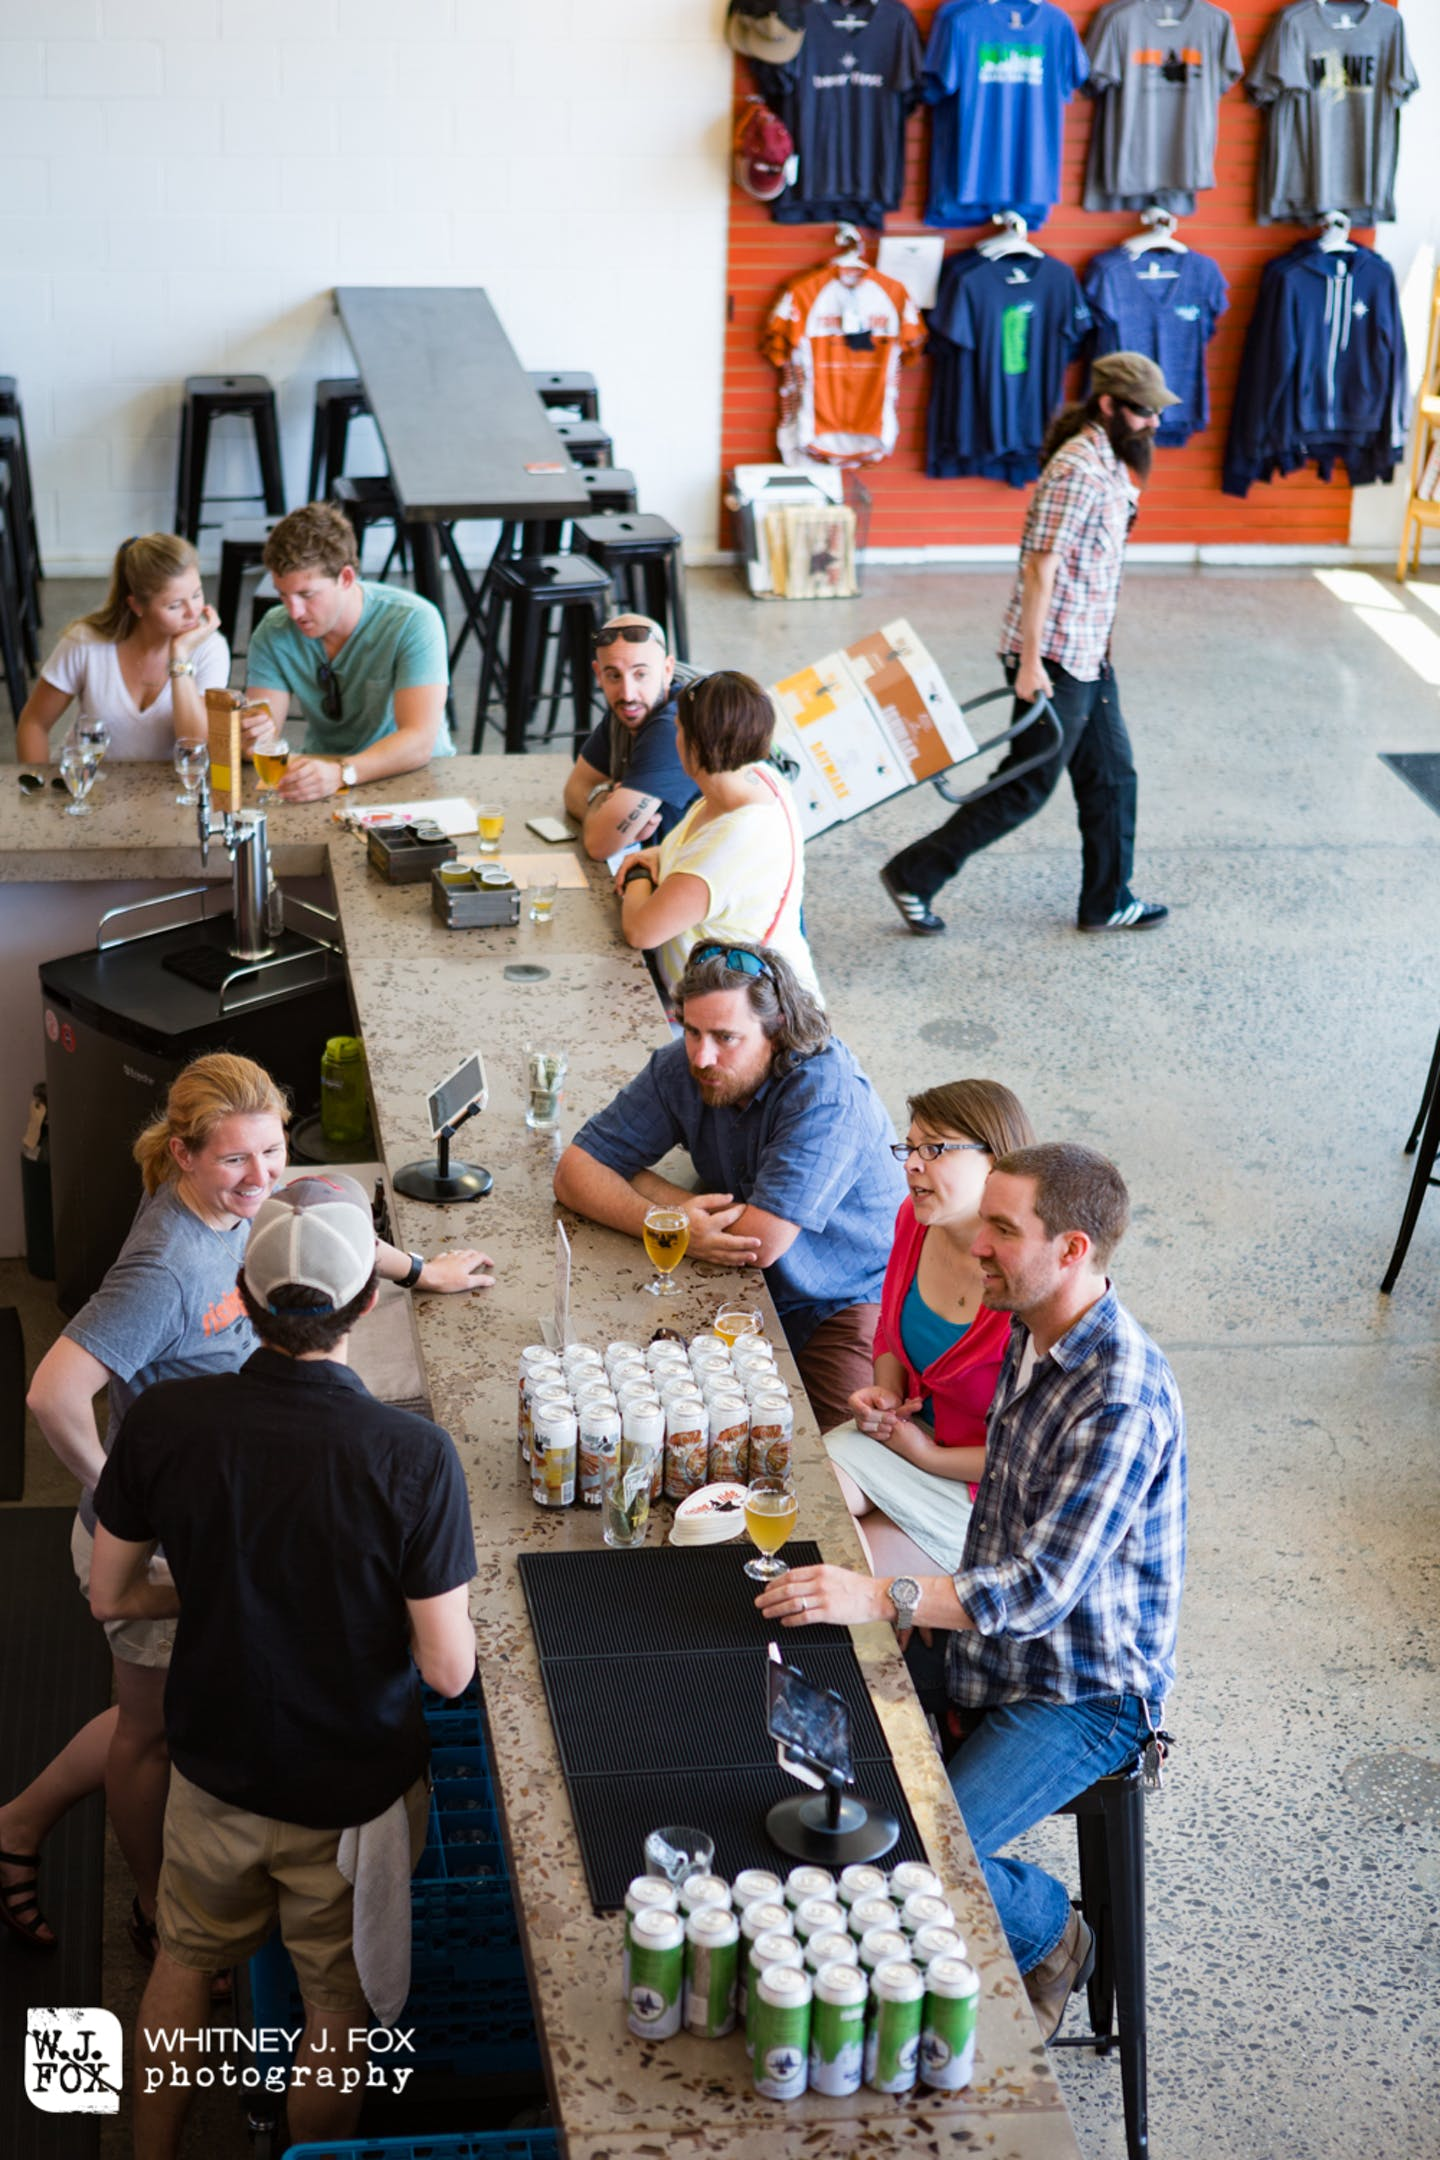 Rising Tide Brewing Company spring photo shoot at the tasting room on Fox Street in Portland's East Bayside neighborhood.  The artisanal craft brewery offers beer in an airy tasting room, plus live music, food trucks & tours.  According to the Maine Brewe